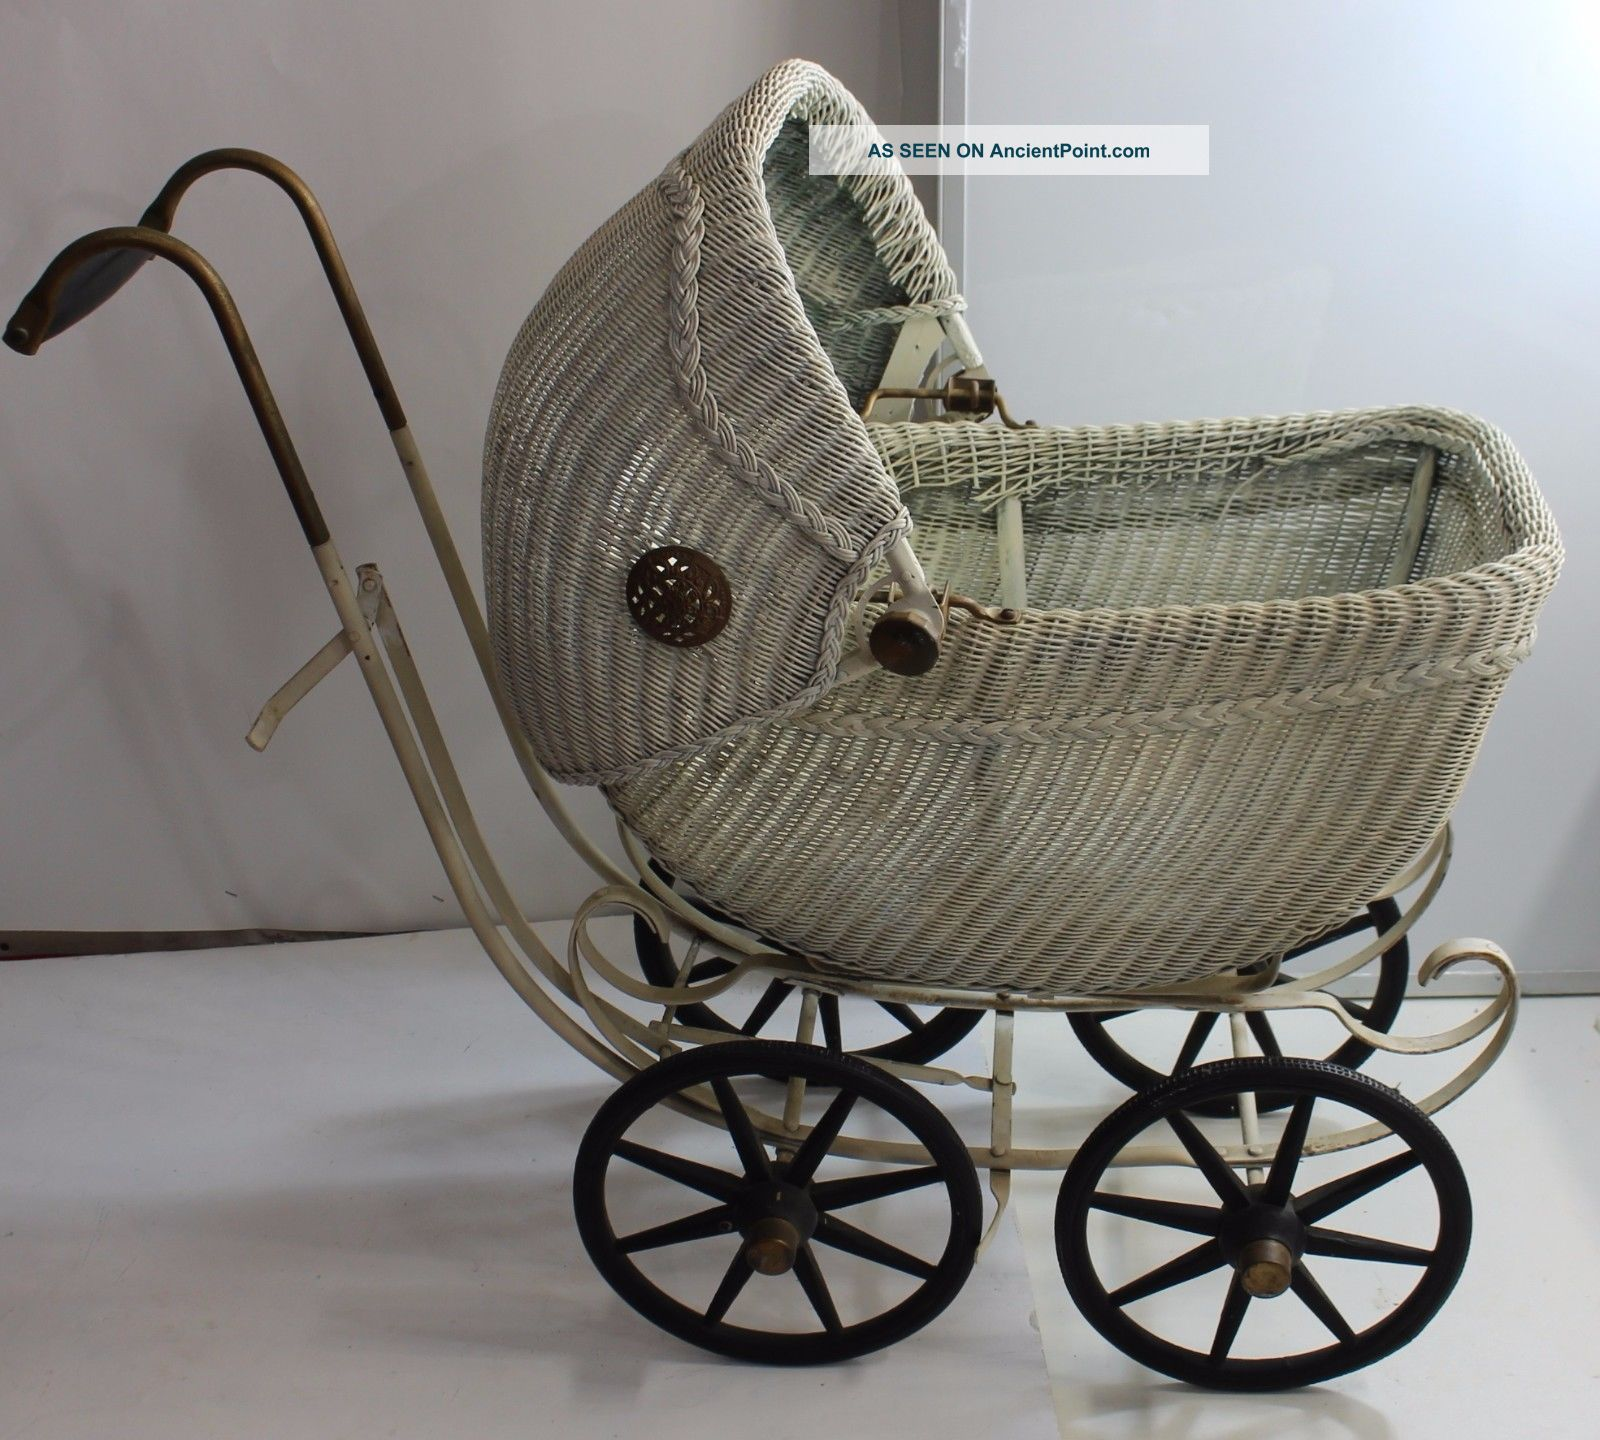 For Lovinb3 - Doll Carriage Stroller Pram - Wicker Metal Rubber Wheels Baby Carriages & Buggies photo